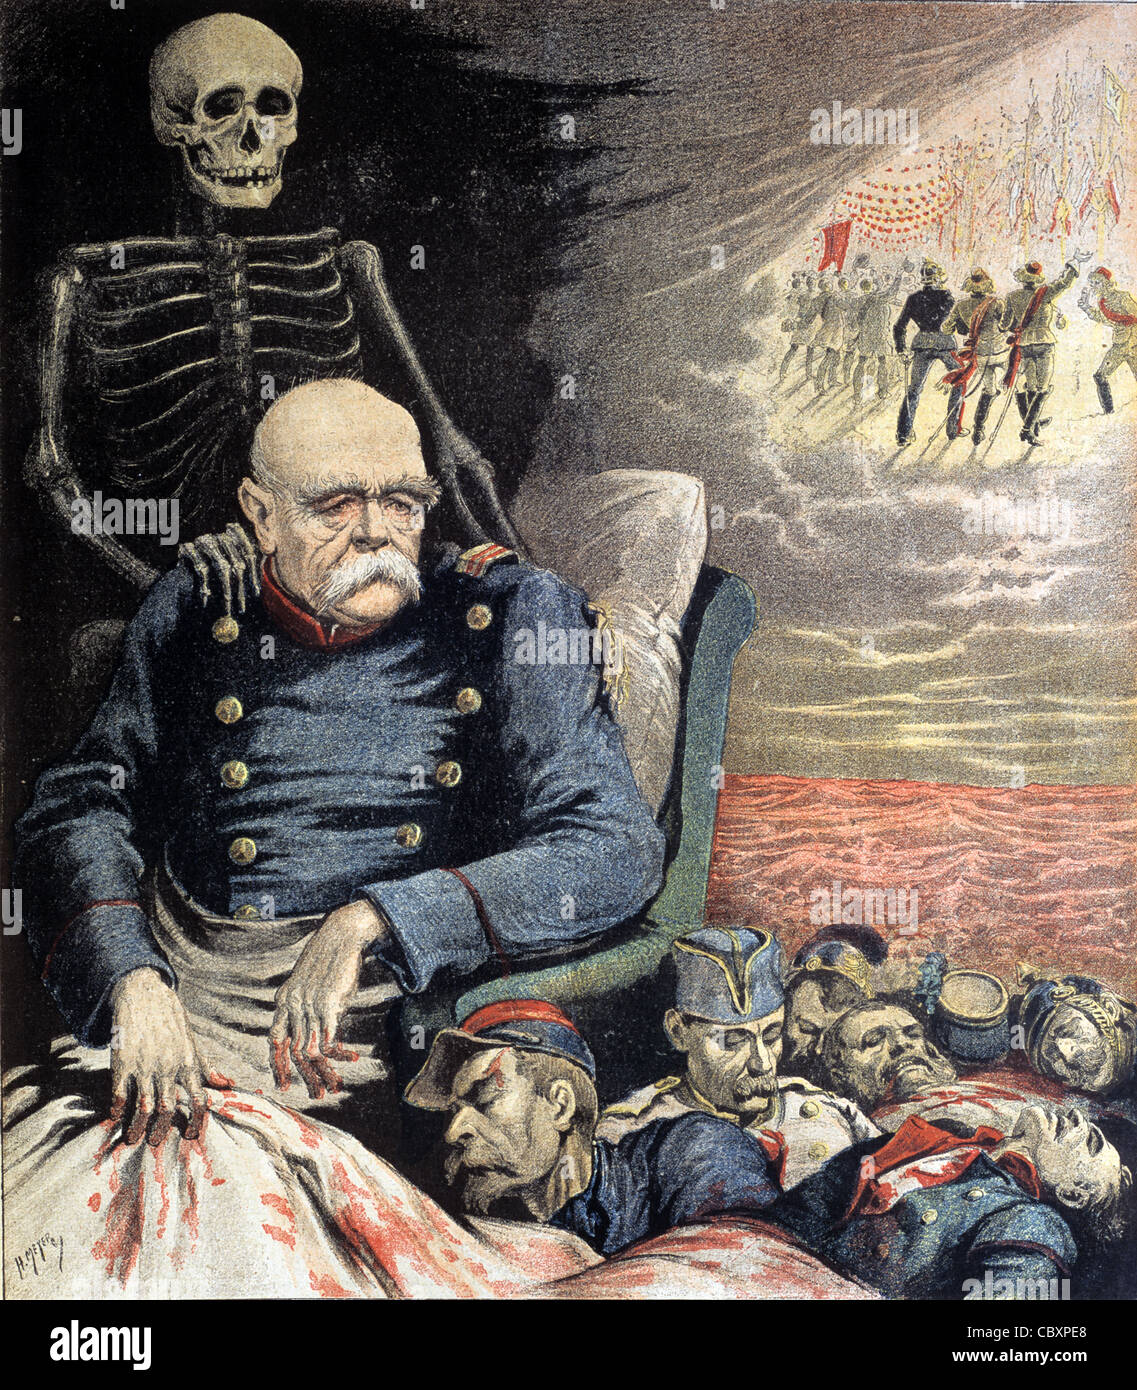 the life and times of otto von bismarck To what extent was otto von bismarck affected by the 7 deadly sins what is the significance of otto von bismarck and the founding of germany what was the average life like in the prussian army during frederick the great & otto von bismarck's time.